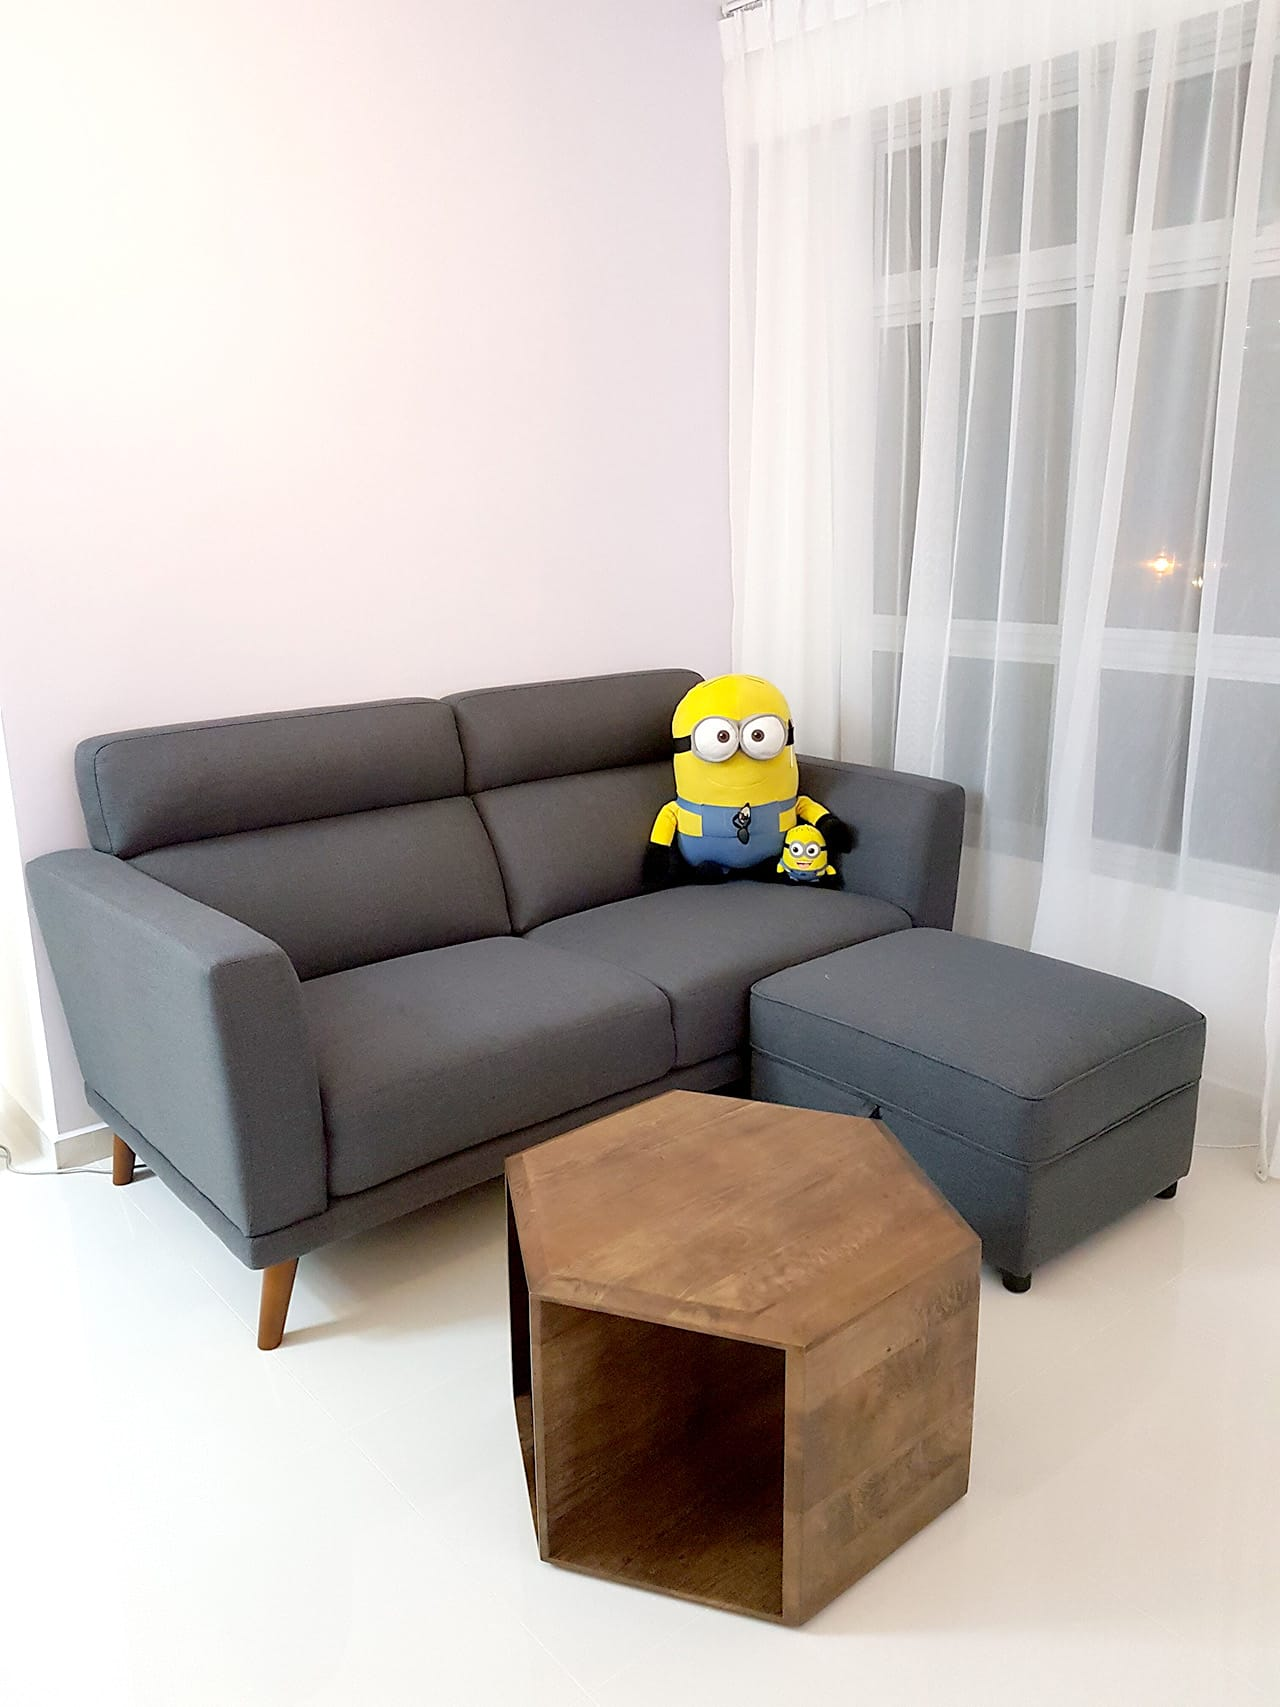 Apartment - Bukit Batok | Product Seen: [Neuron 2.5 Seater Sofa, Treasure Ottoman (Storage) & Mosaic Coffee Table]